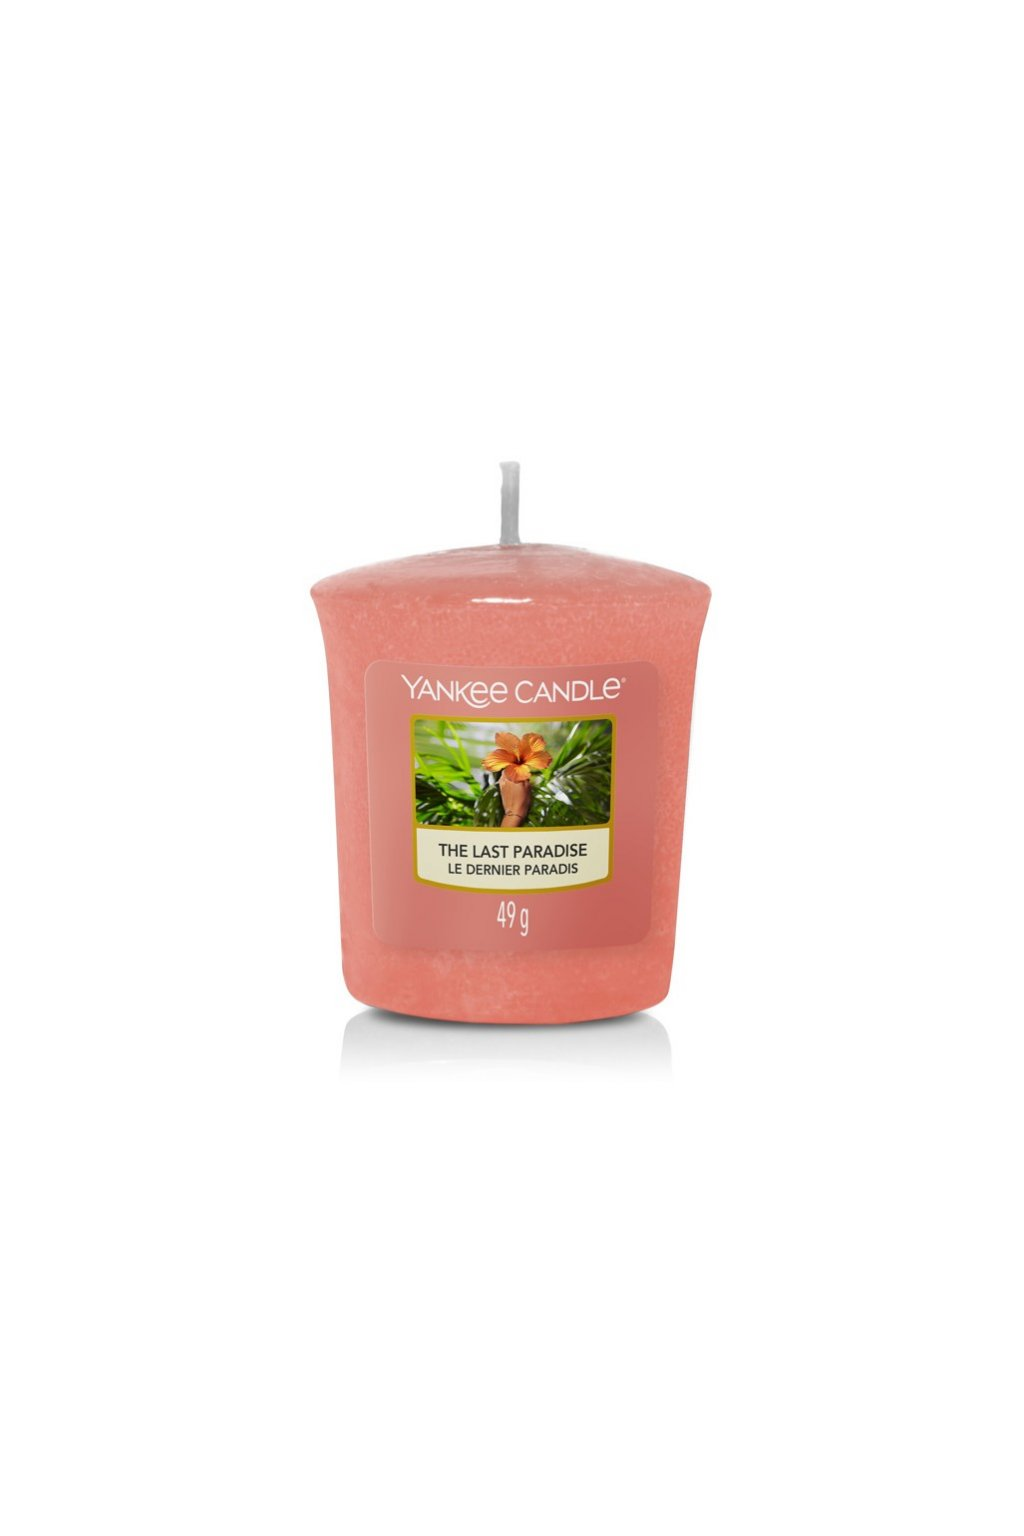 Yankee Candle The Last Paradise 49g